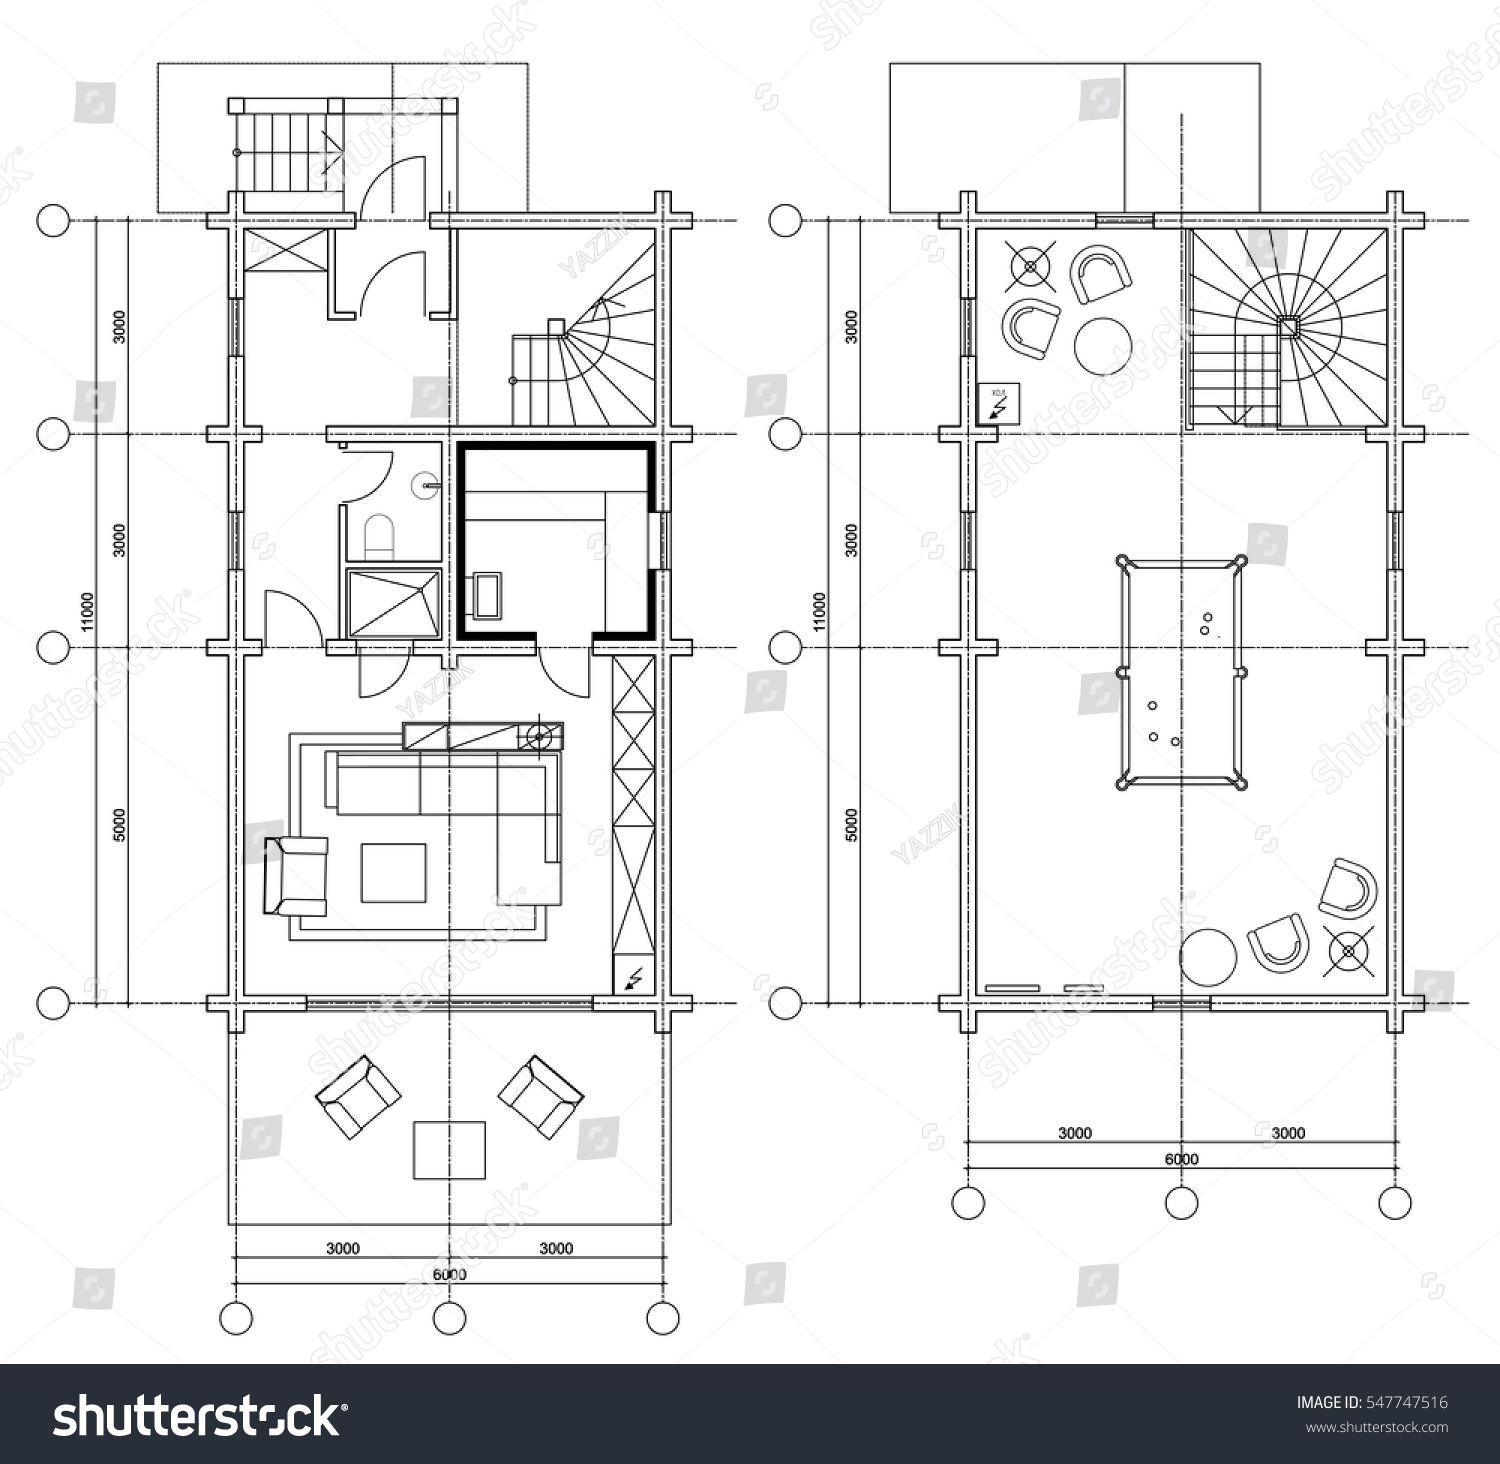 How to read house plans symbols for How to read construction blueprints